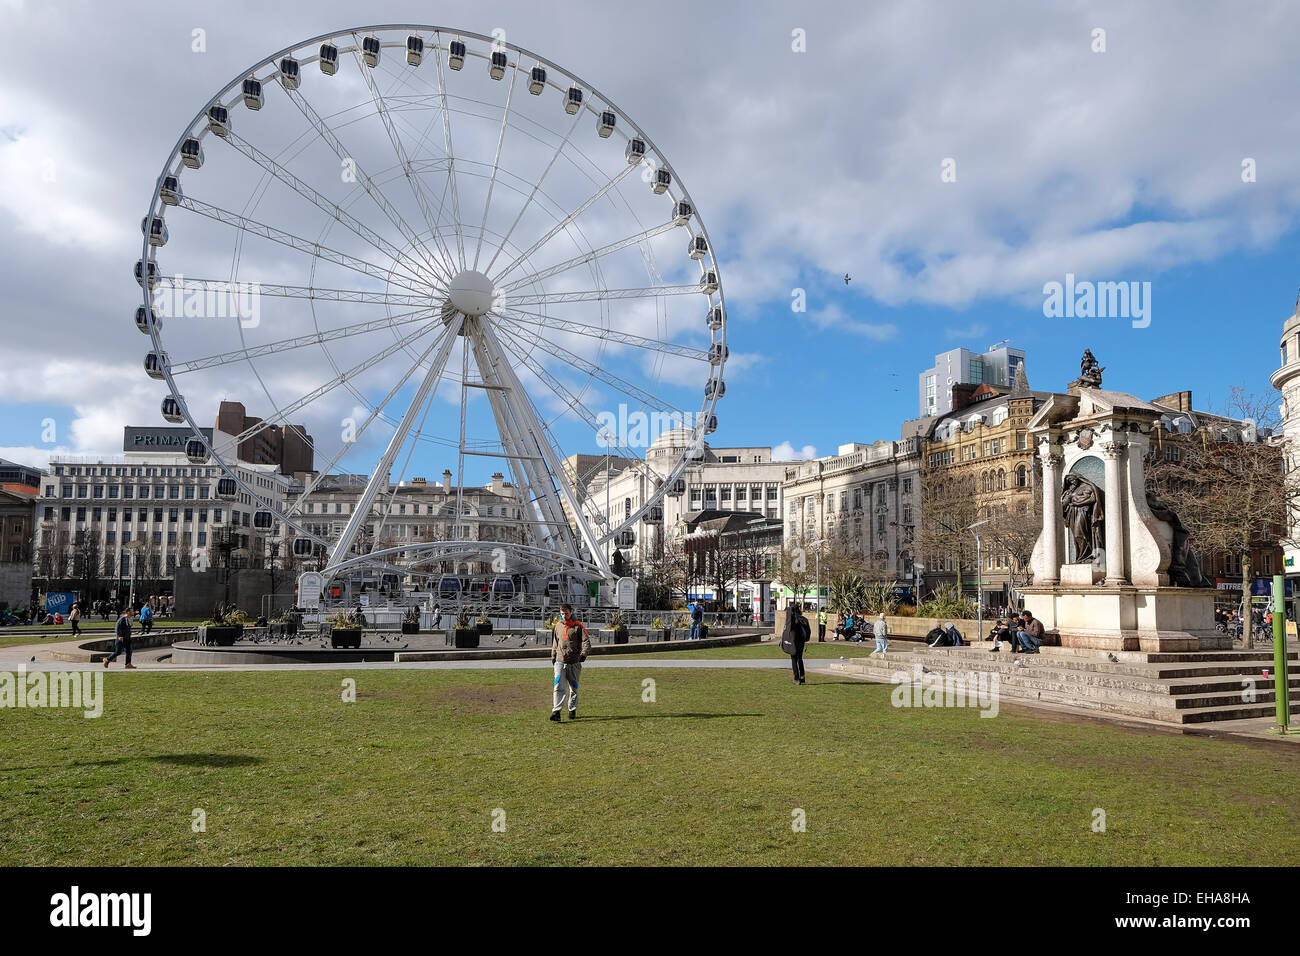 Manchester UK: Large Ferris Wheel in Piccadilly Gardens Manchester - Stock Image